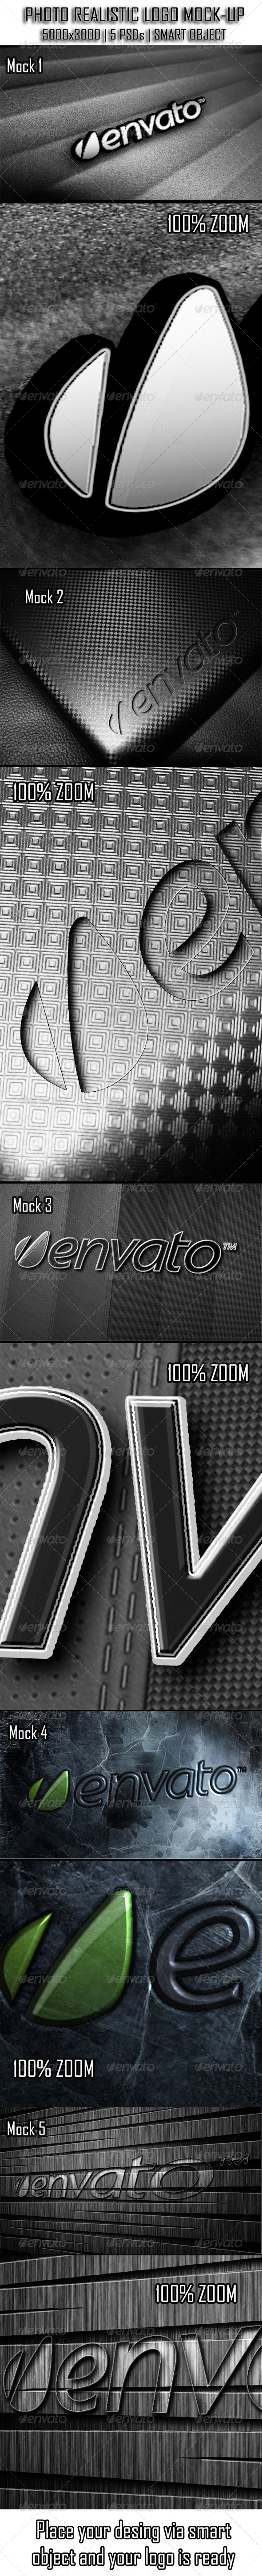 GraphicRiver Photorealistic Logo Mock-Ups 5736743